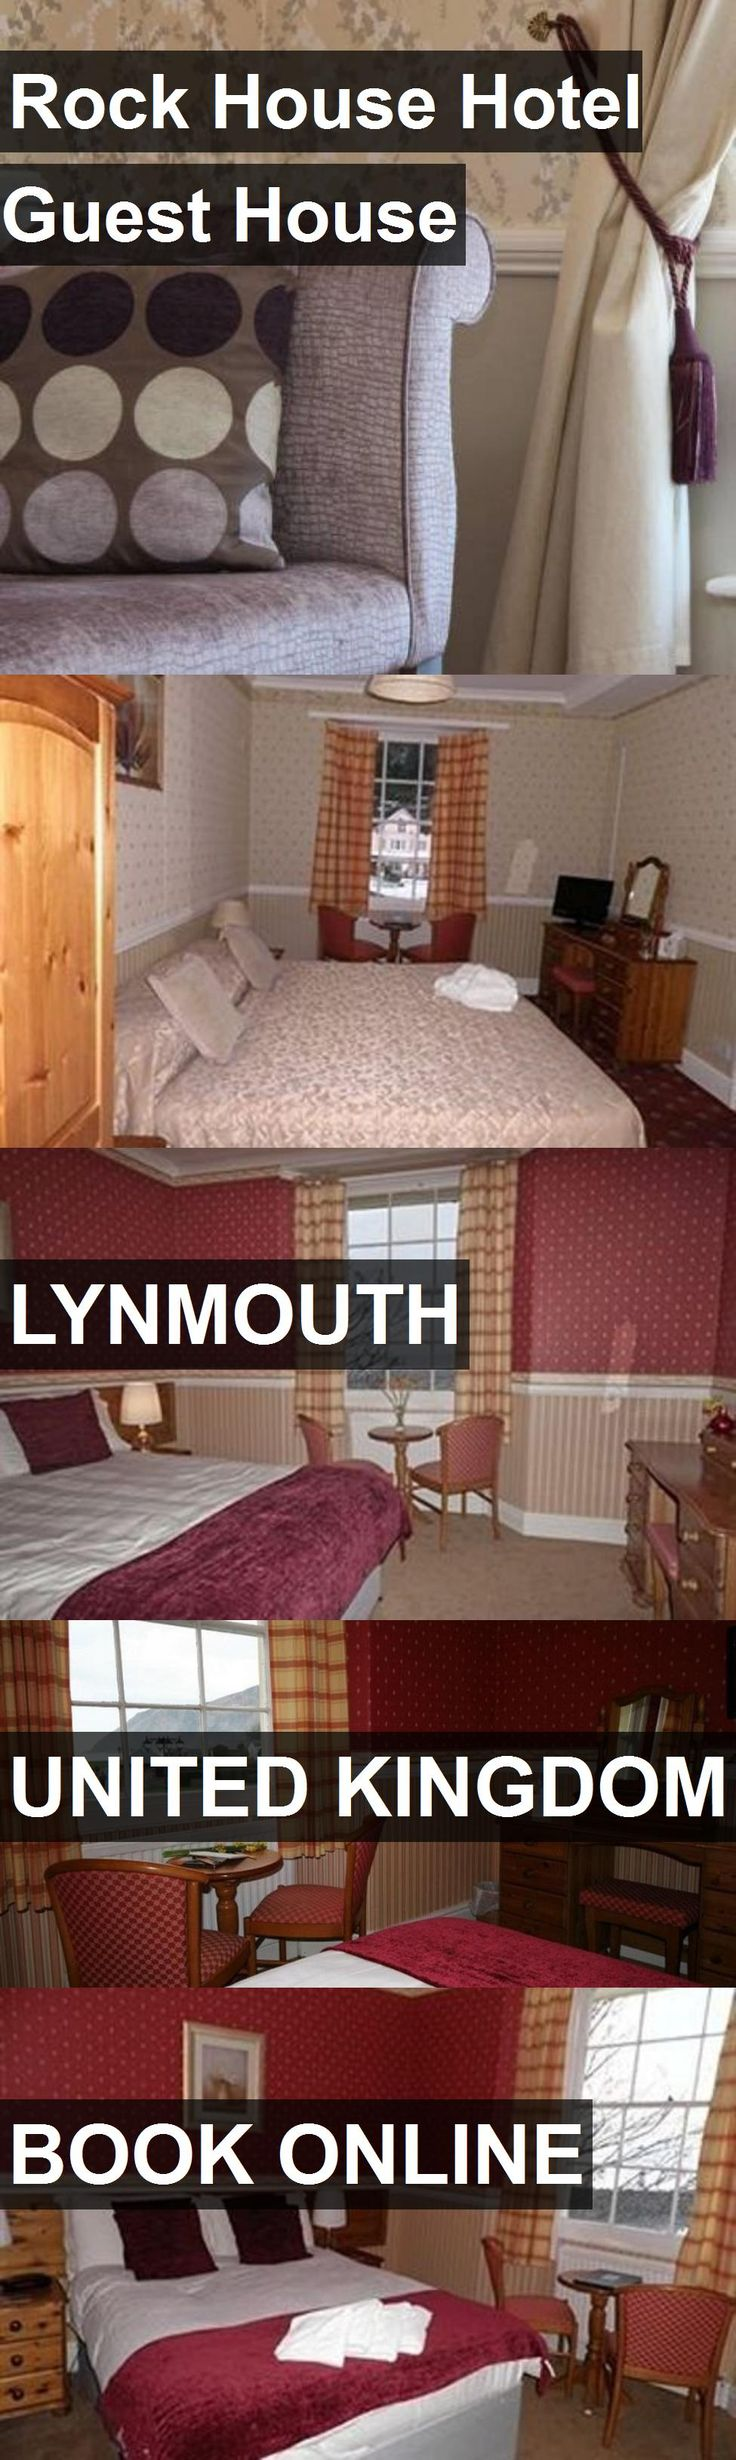 Rock House Hotel Guest House in Lynmouth, United Kingdom. For more information, photos, reviews and best prices please follow the link. #UnitedKingdom #Lynmouth #travel #vacation #hotel #guesthouse